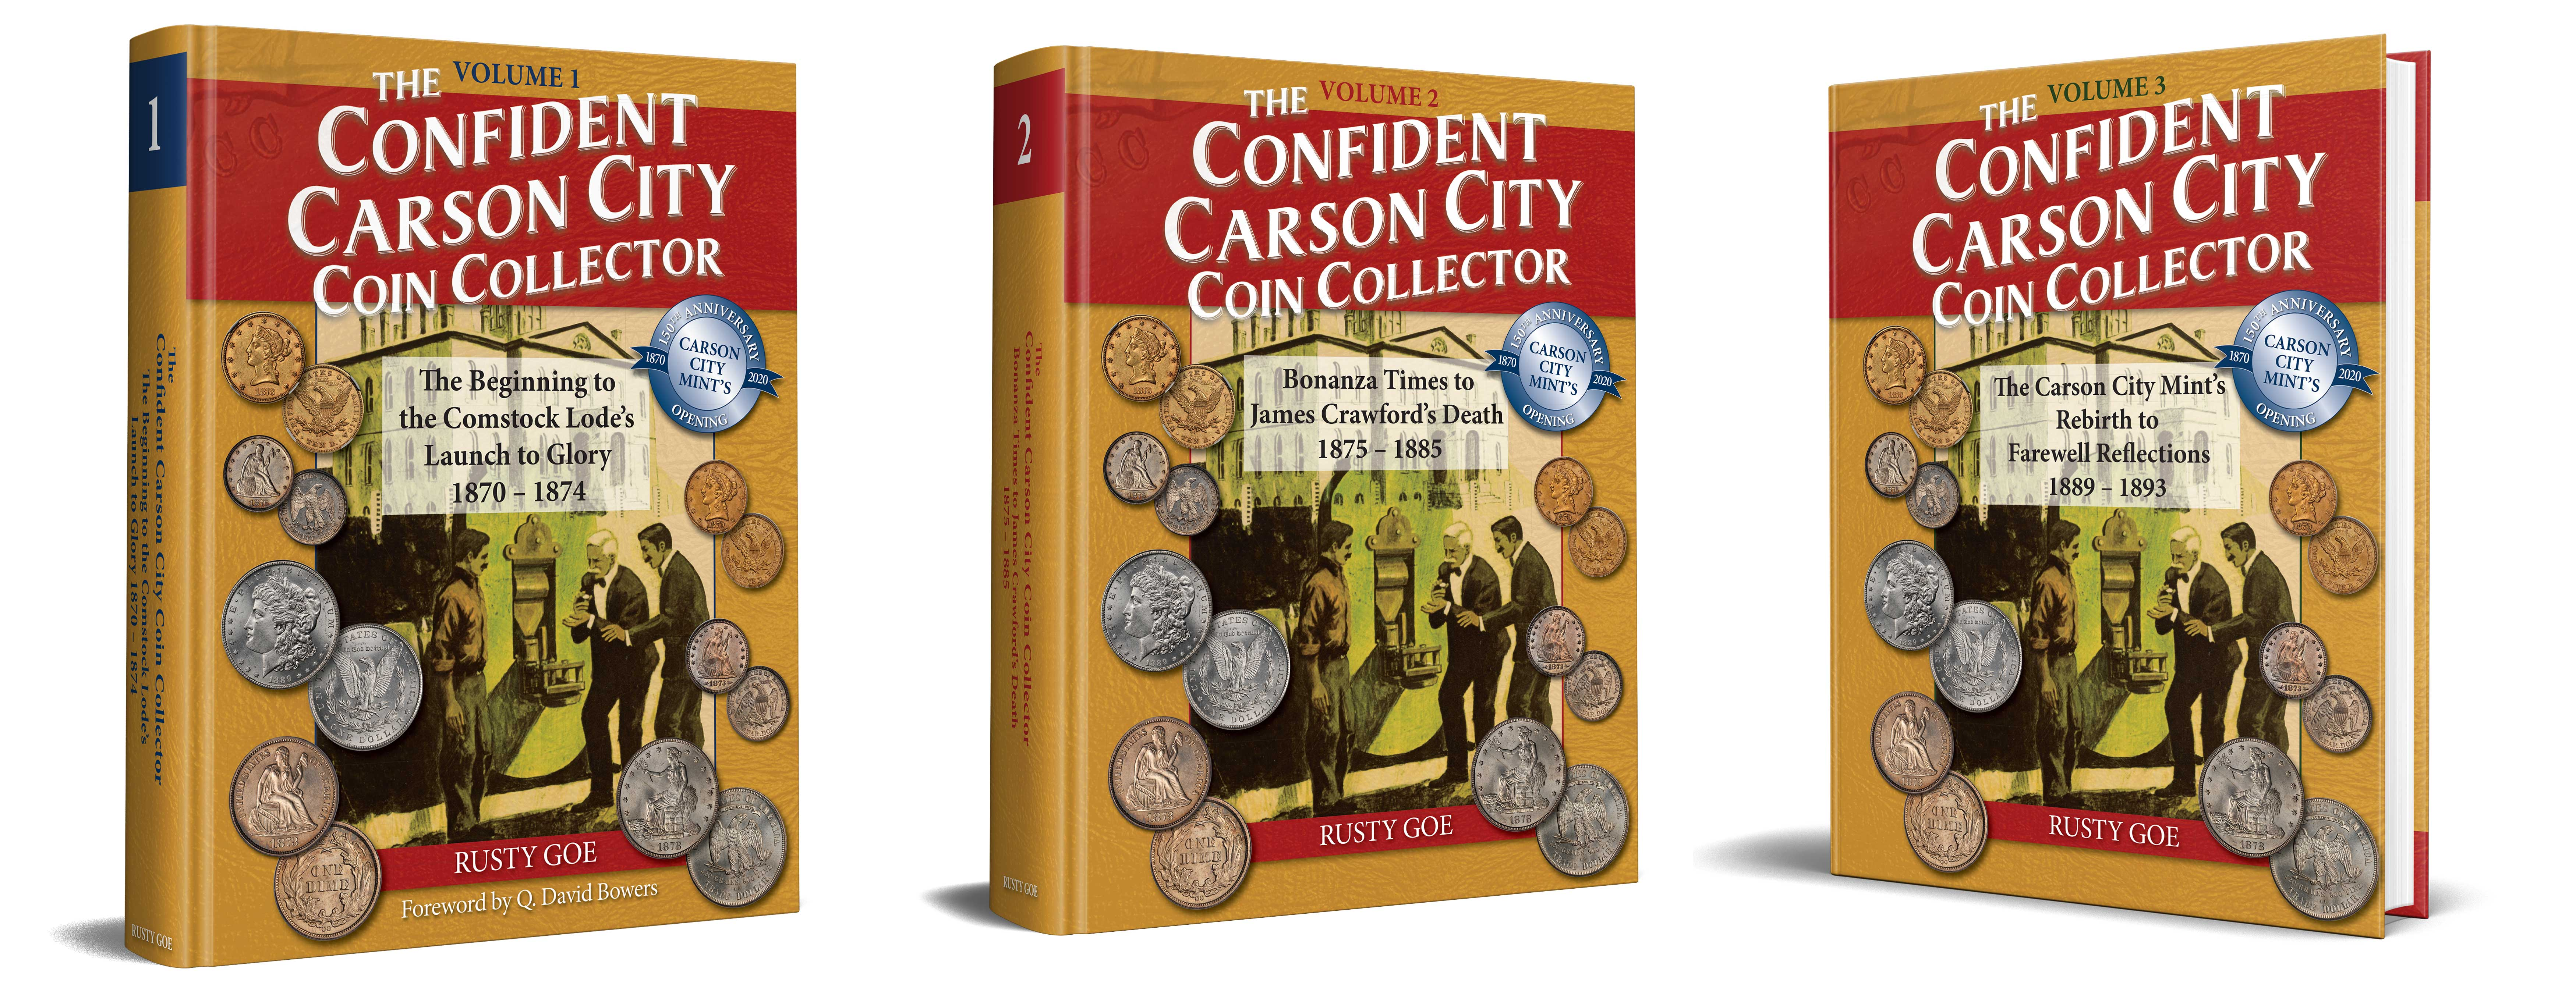 The Confident Carson City Coin Collector – Rusty Goe at Southgate Coins